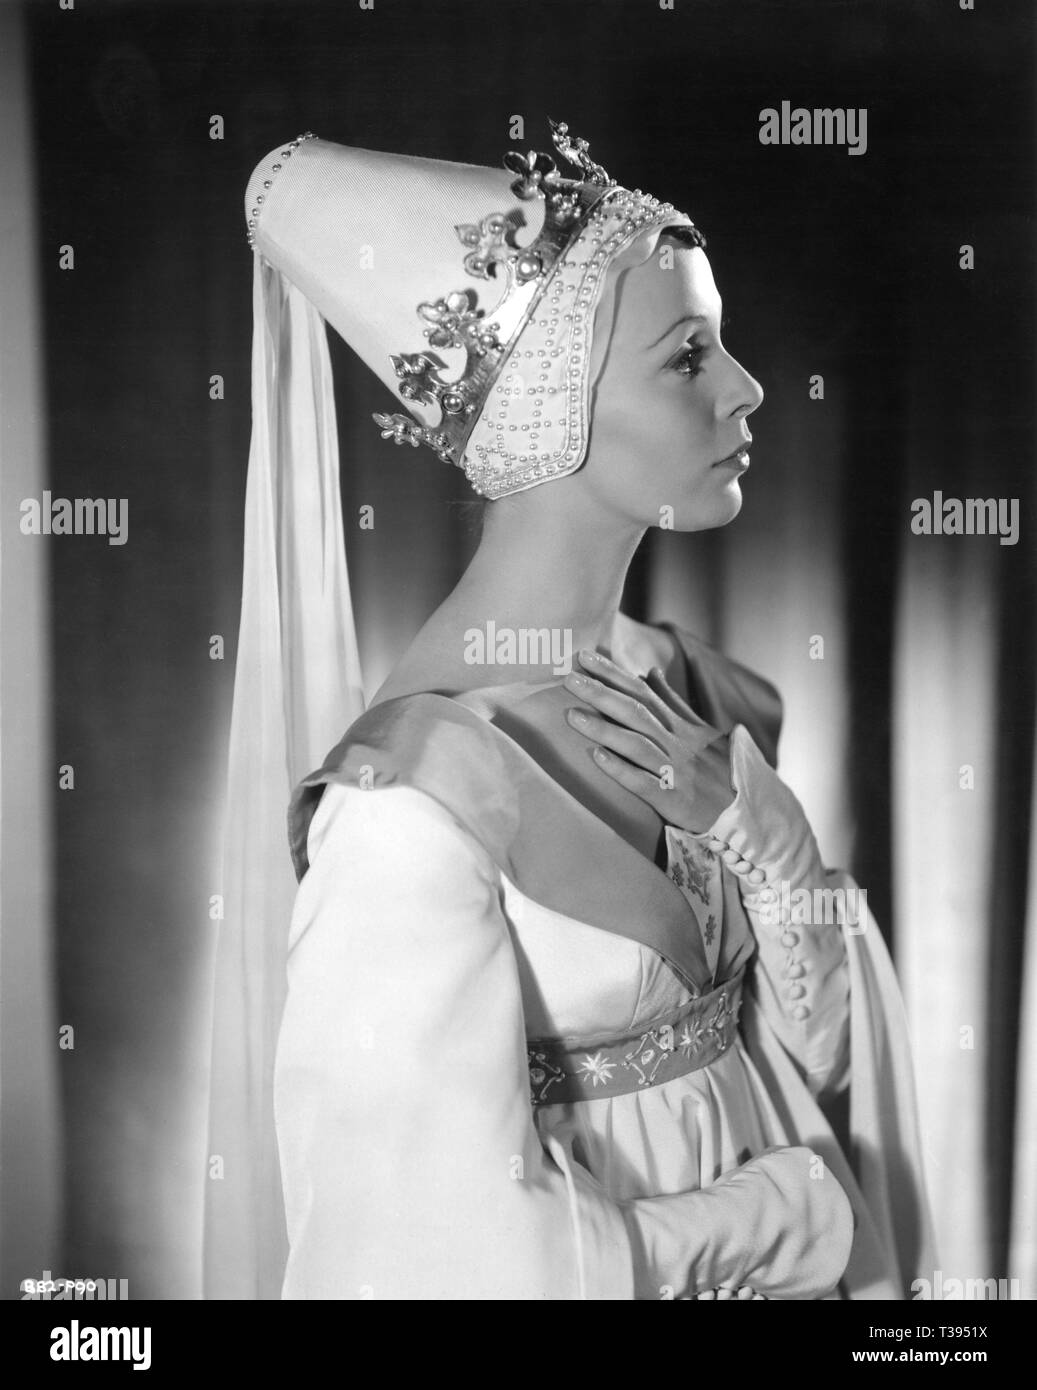 Claire Bloom as Lady Anne in RICHARD III 1955 William Shakespeare director and star Laurence Olivier  Alexander Korda L.O.P. / London Film Productions - Stock Image